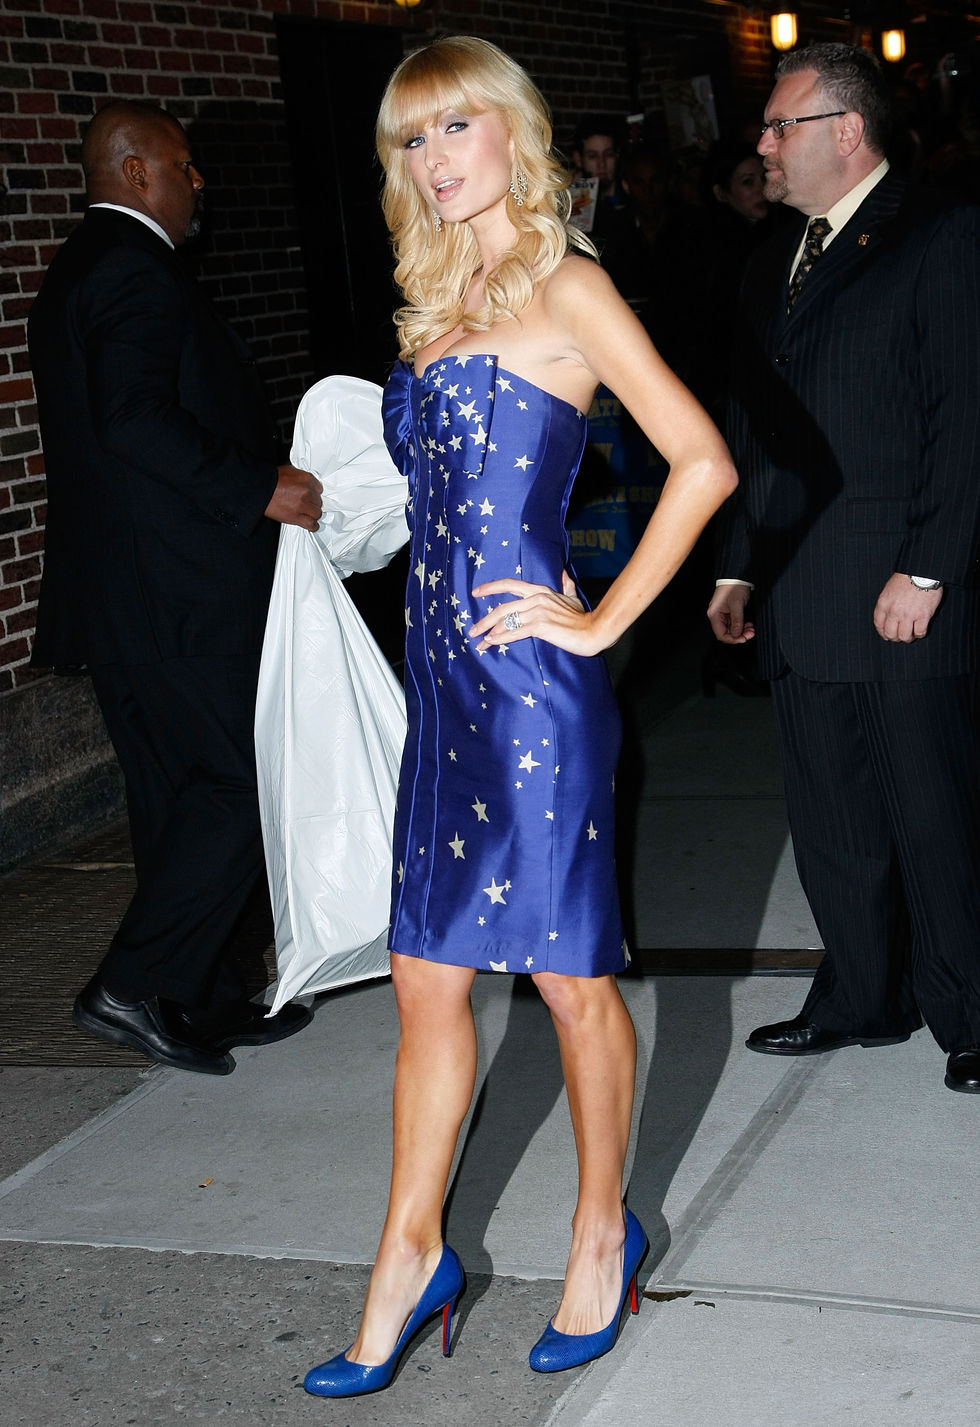 paris-hilton-visits-late-show-with-david-letterman-in-new-york-city-01